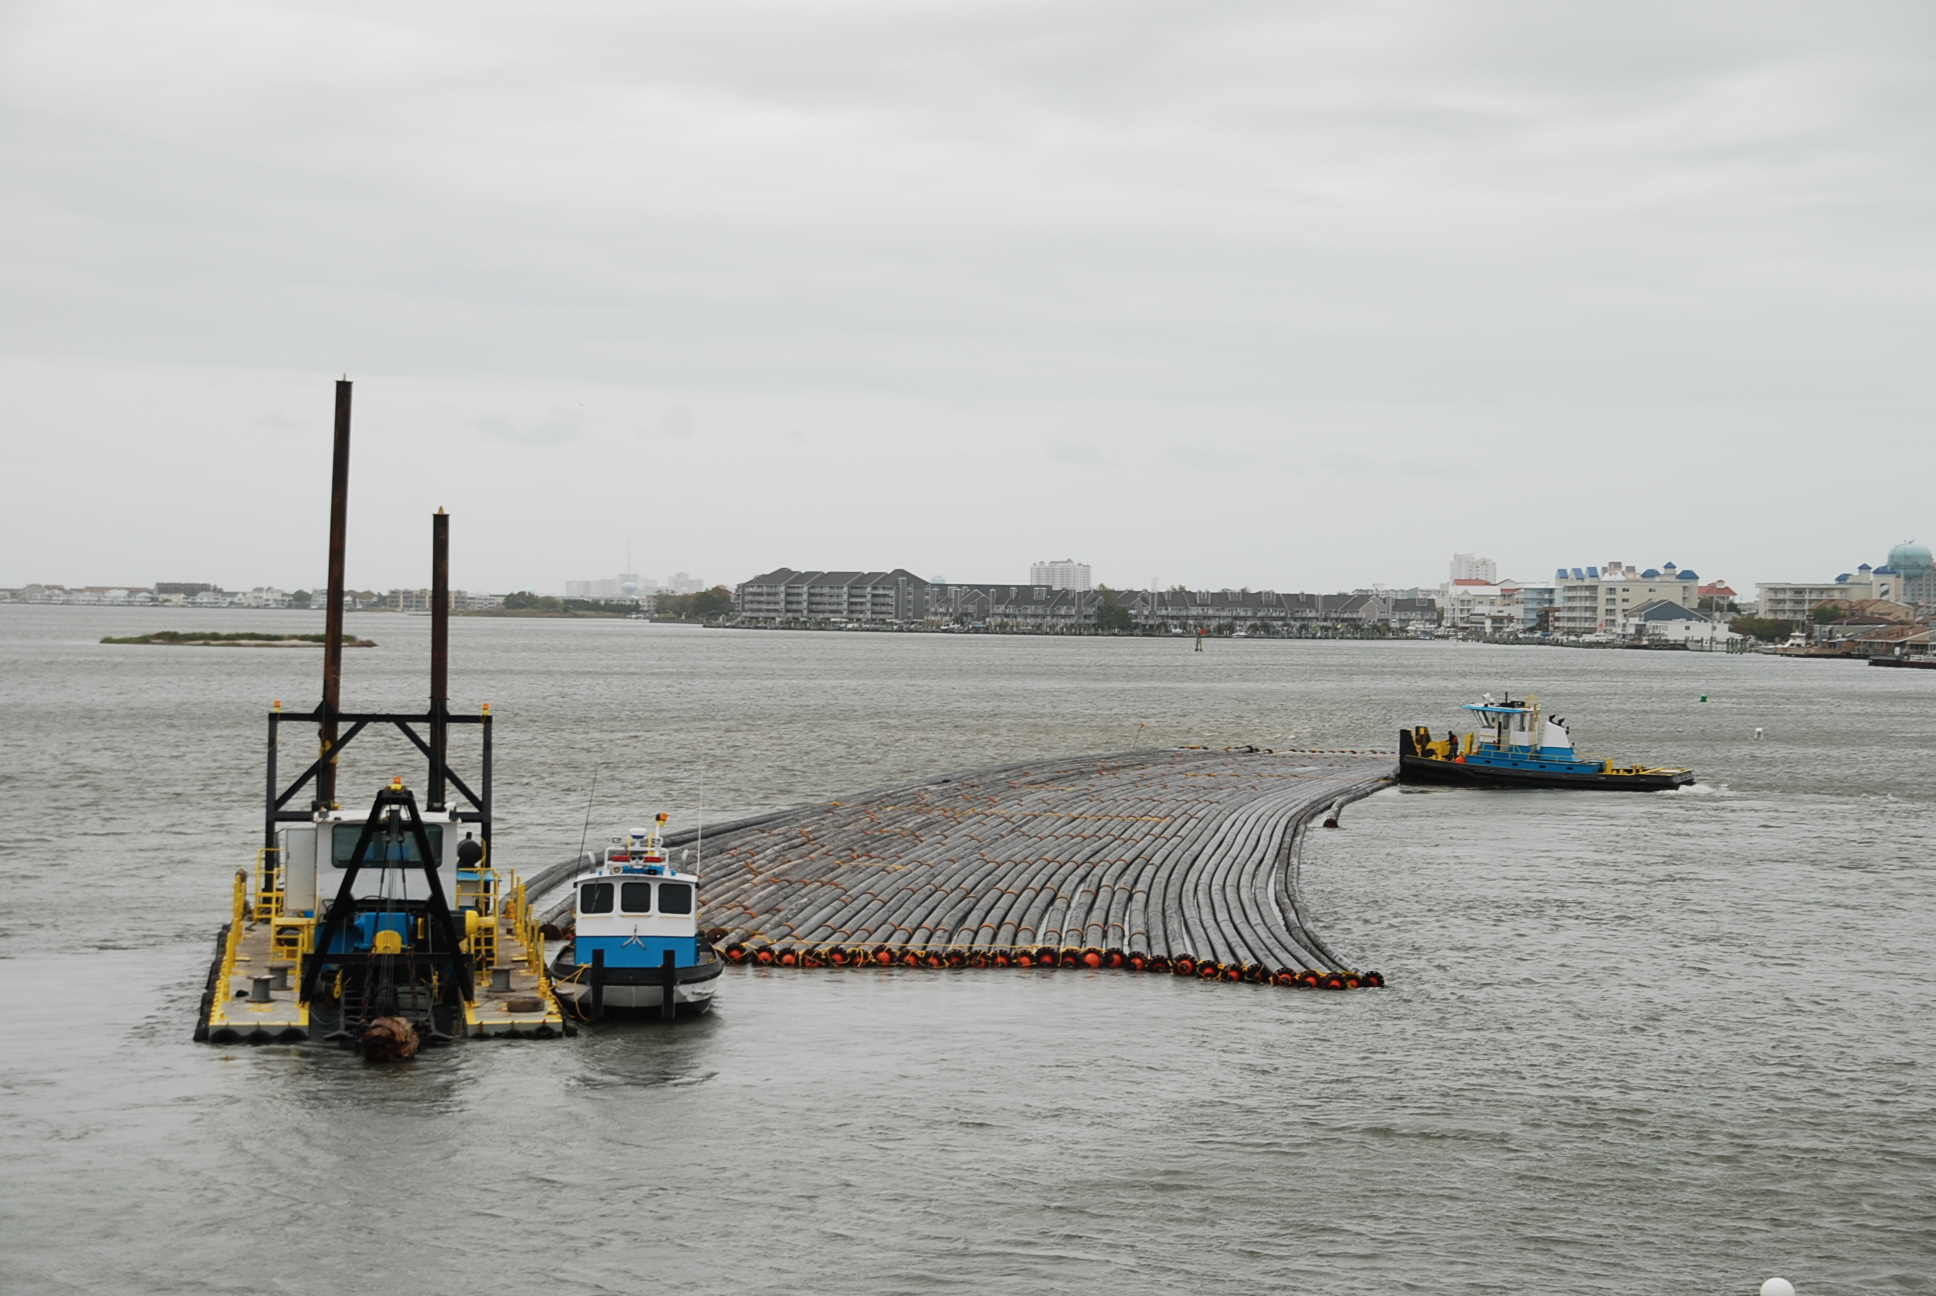 Advance preparations were being made this week in the coastal bays watershed, including placing the large pipes that will carry the dredging material away from the channel. Photo by Shawn Soper